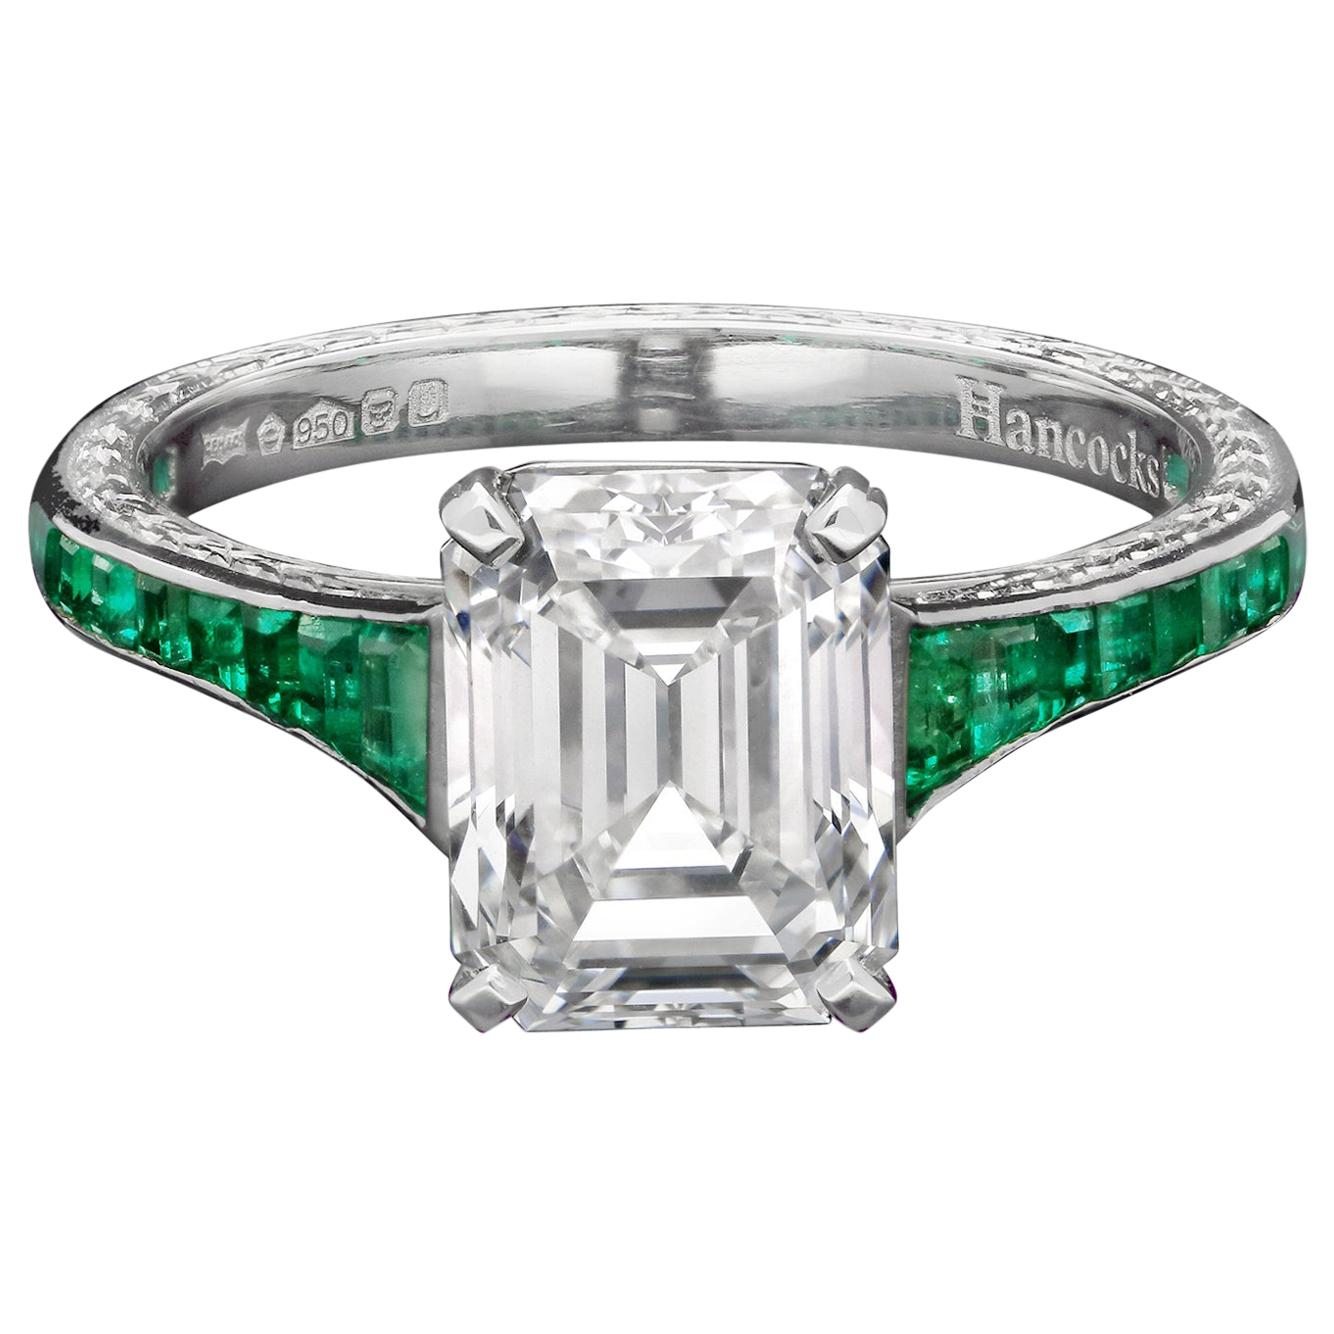 2.34ct F VS2 Vintage Emerald-Cut Diamond with Emerald Shoulders Ring by Hancocks